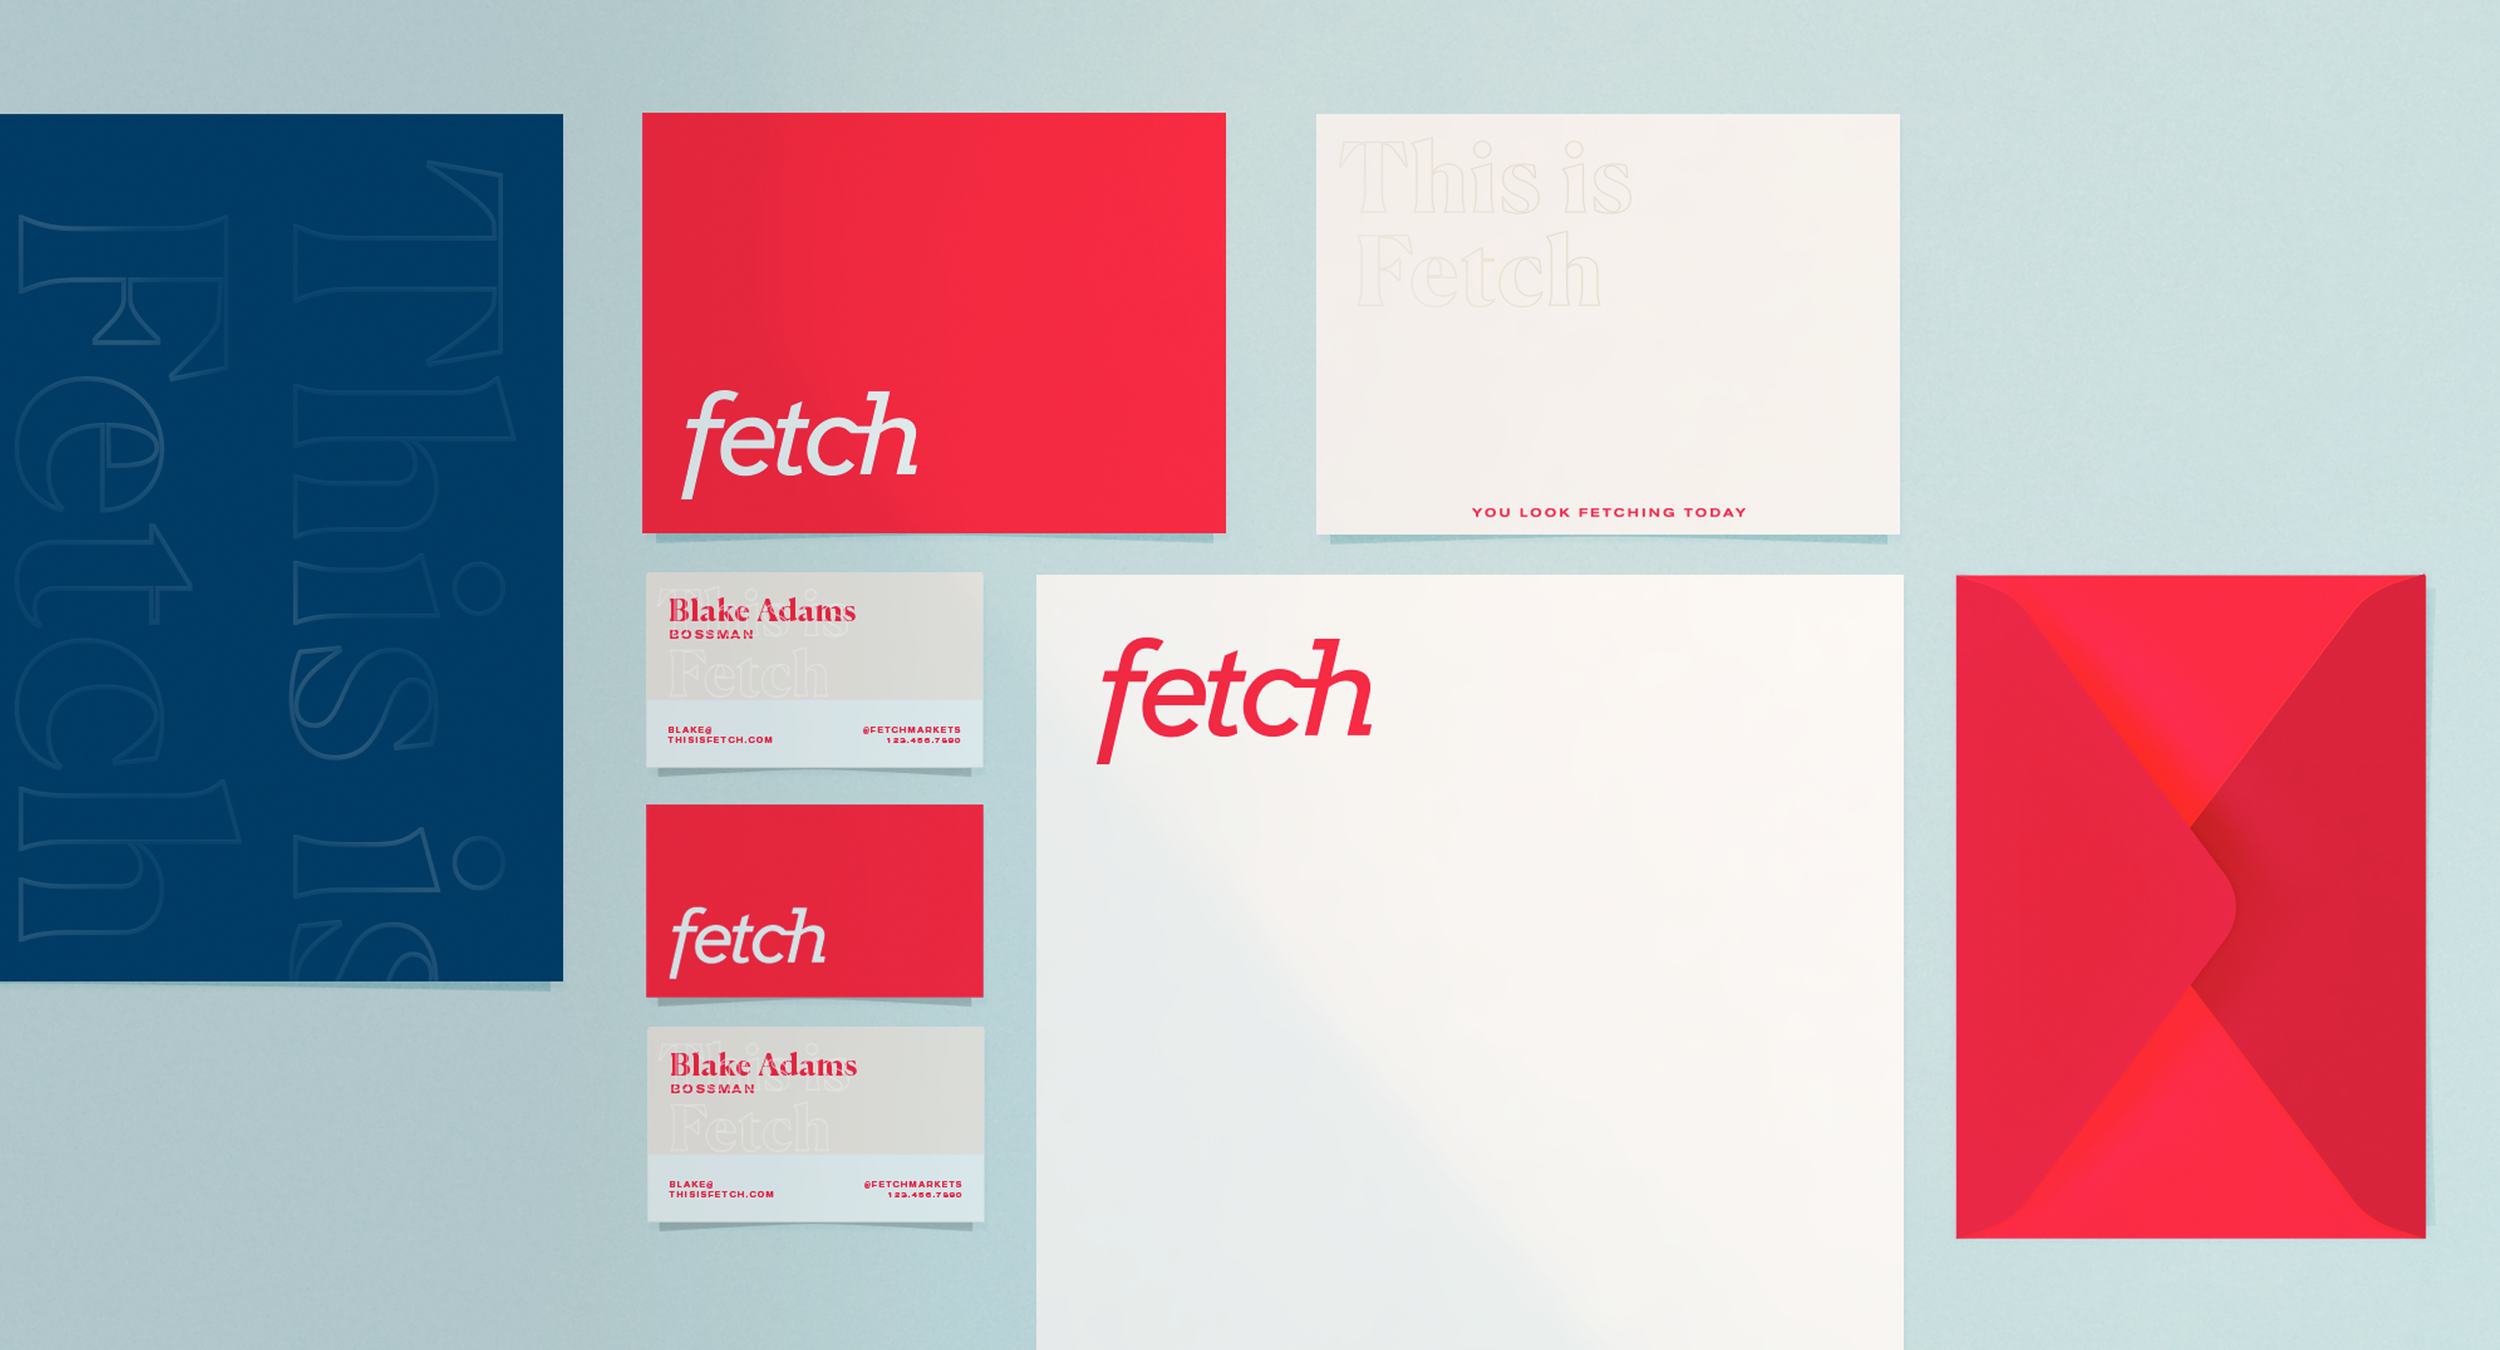 fetch_paperthings.png